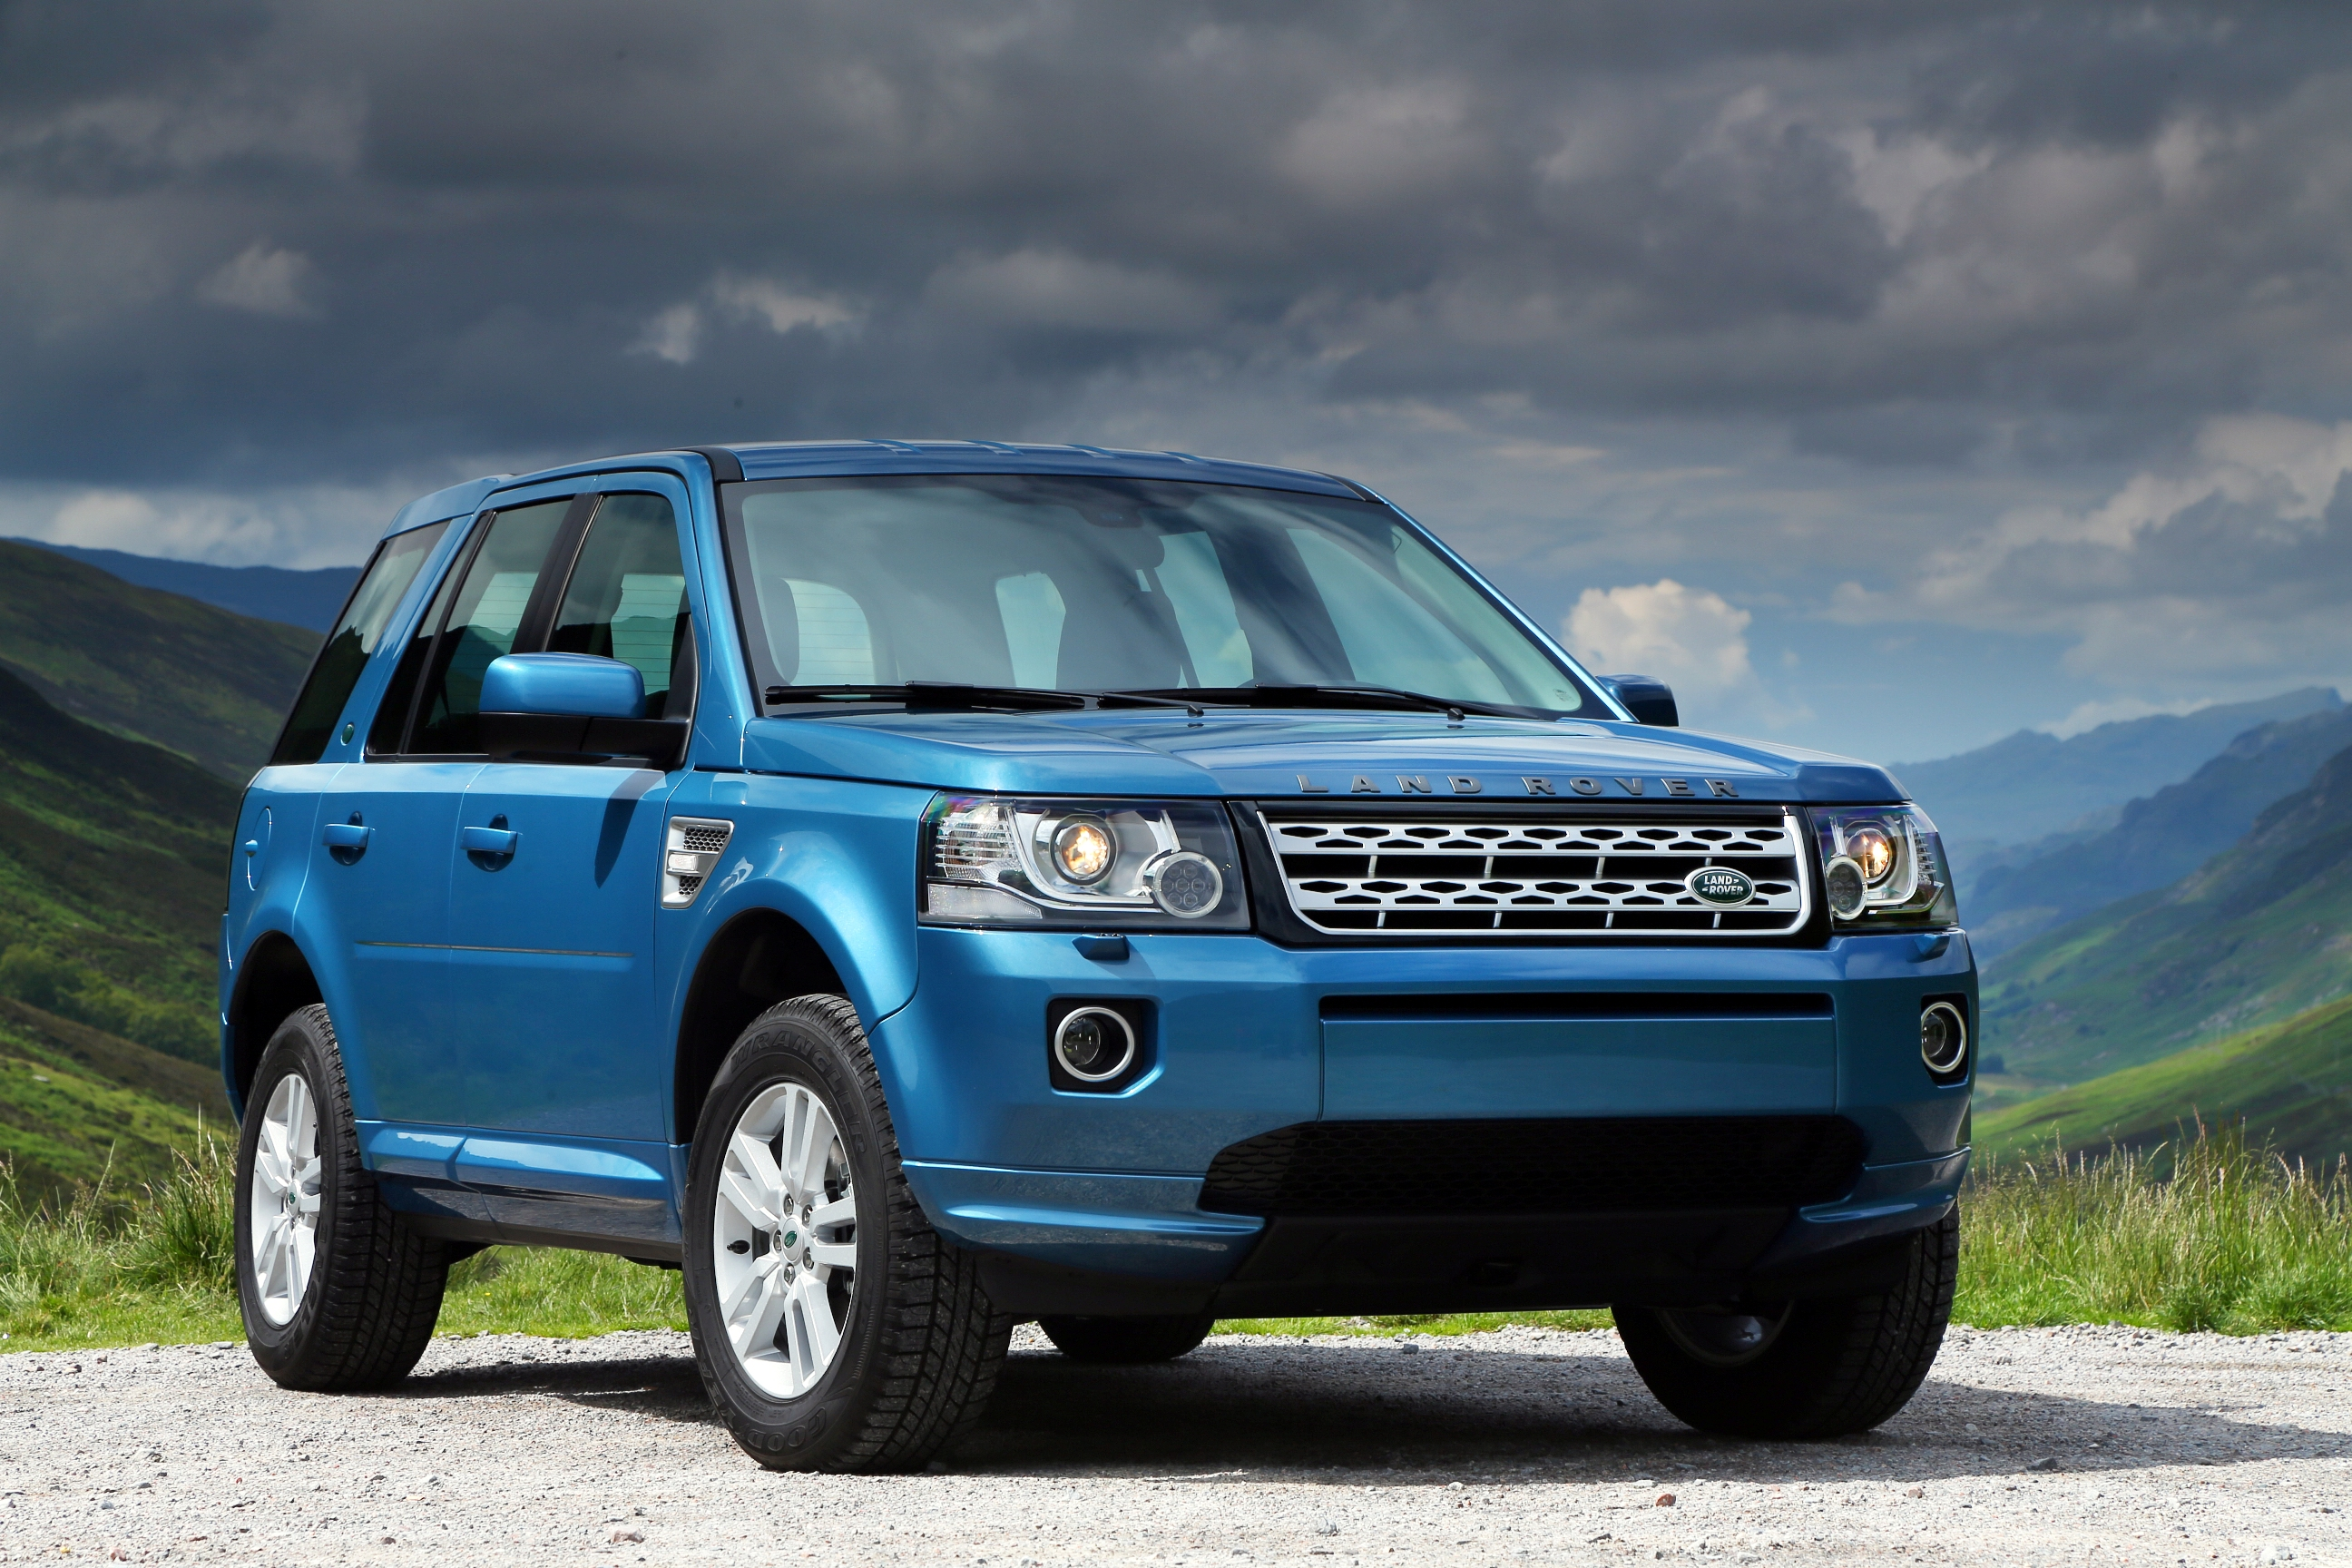 used freelander car landrover for price le belper in sale edition land rover new sport derbyshire limited